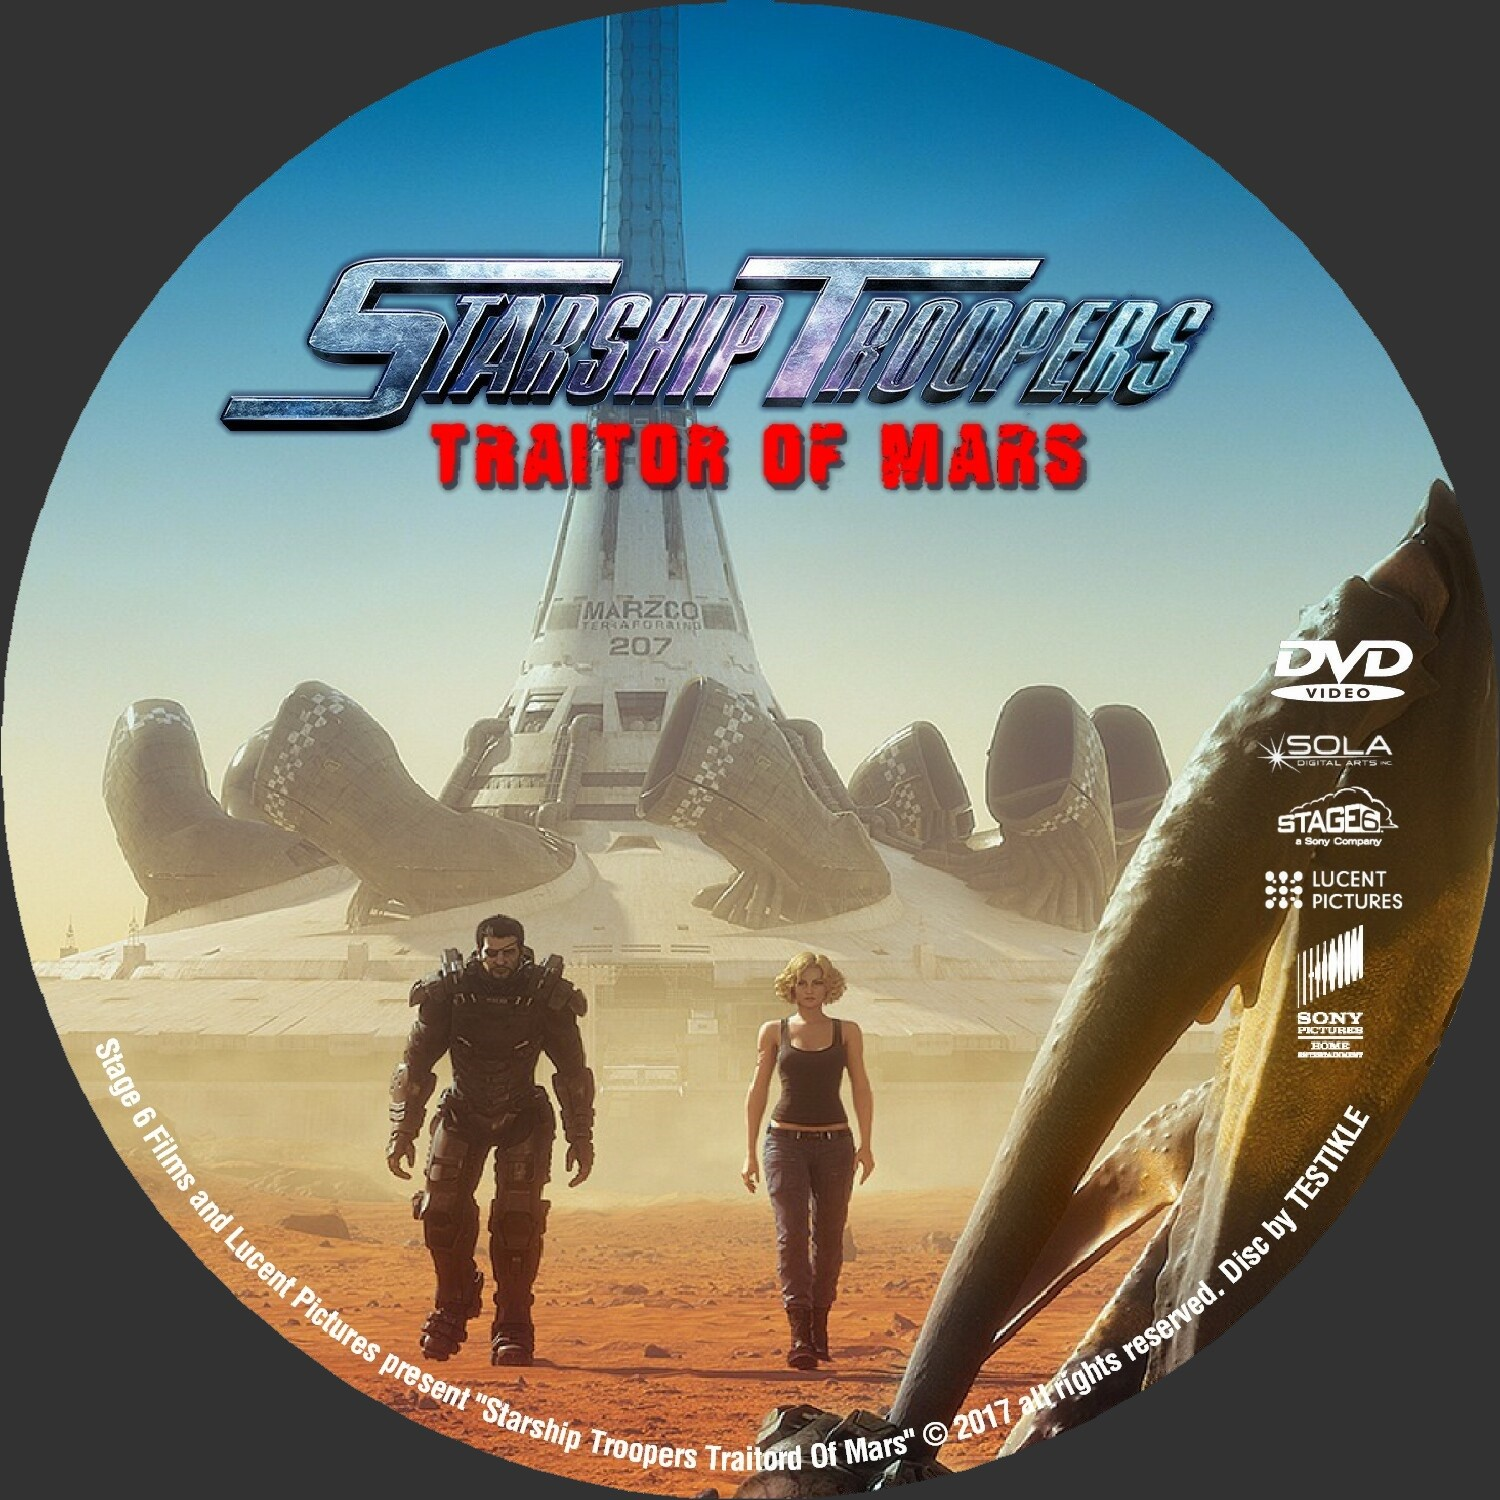 starship troopers traitor of mars full movie download